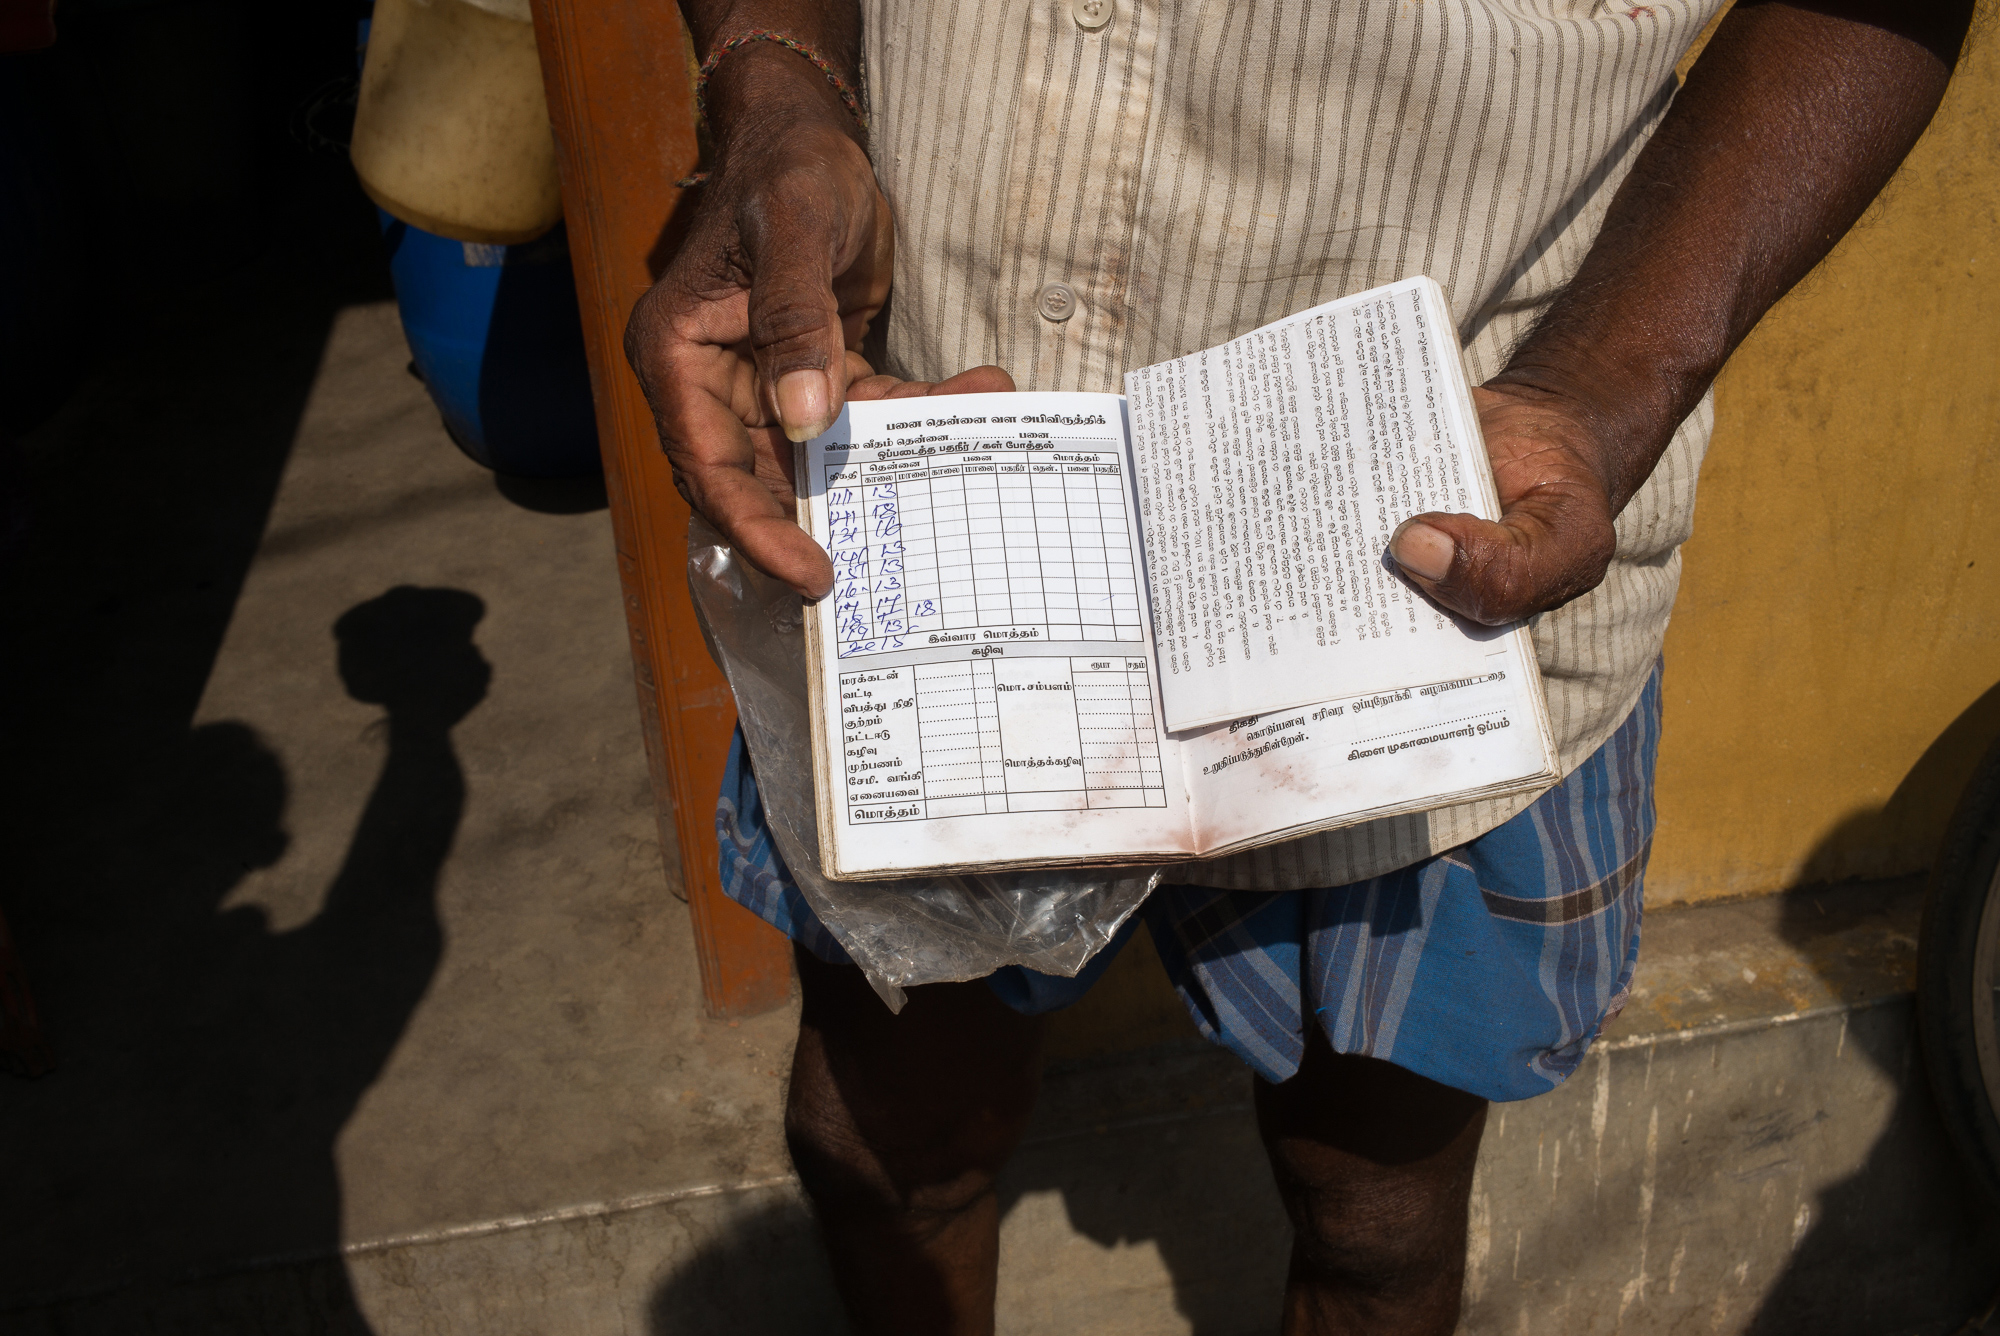 Toddy tappers face a host of government regulations. Here, a tapper shows his logbook in which they record the amounts they gather. Tappers can get between 5 to 50 bottles a day, earning 70 rupees (€0.35) per bottle - from which they have to pay fees to the owners of the trees they tap.